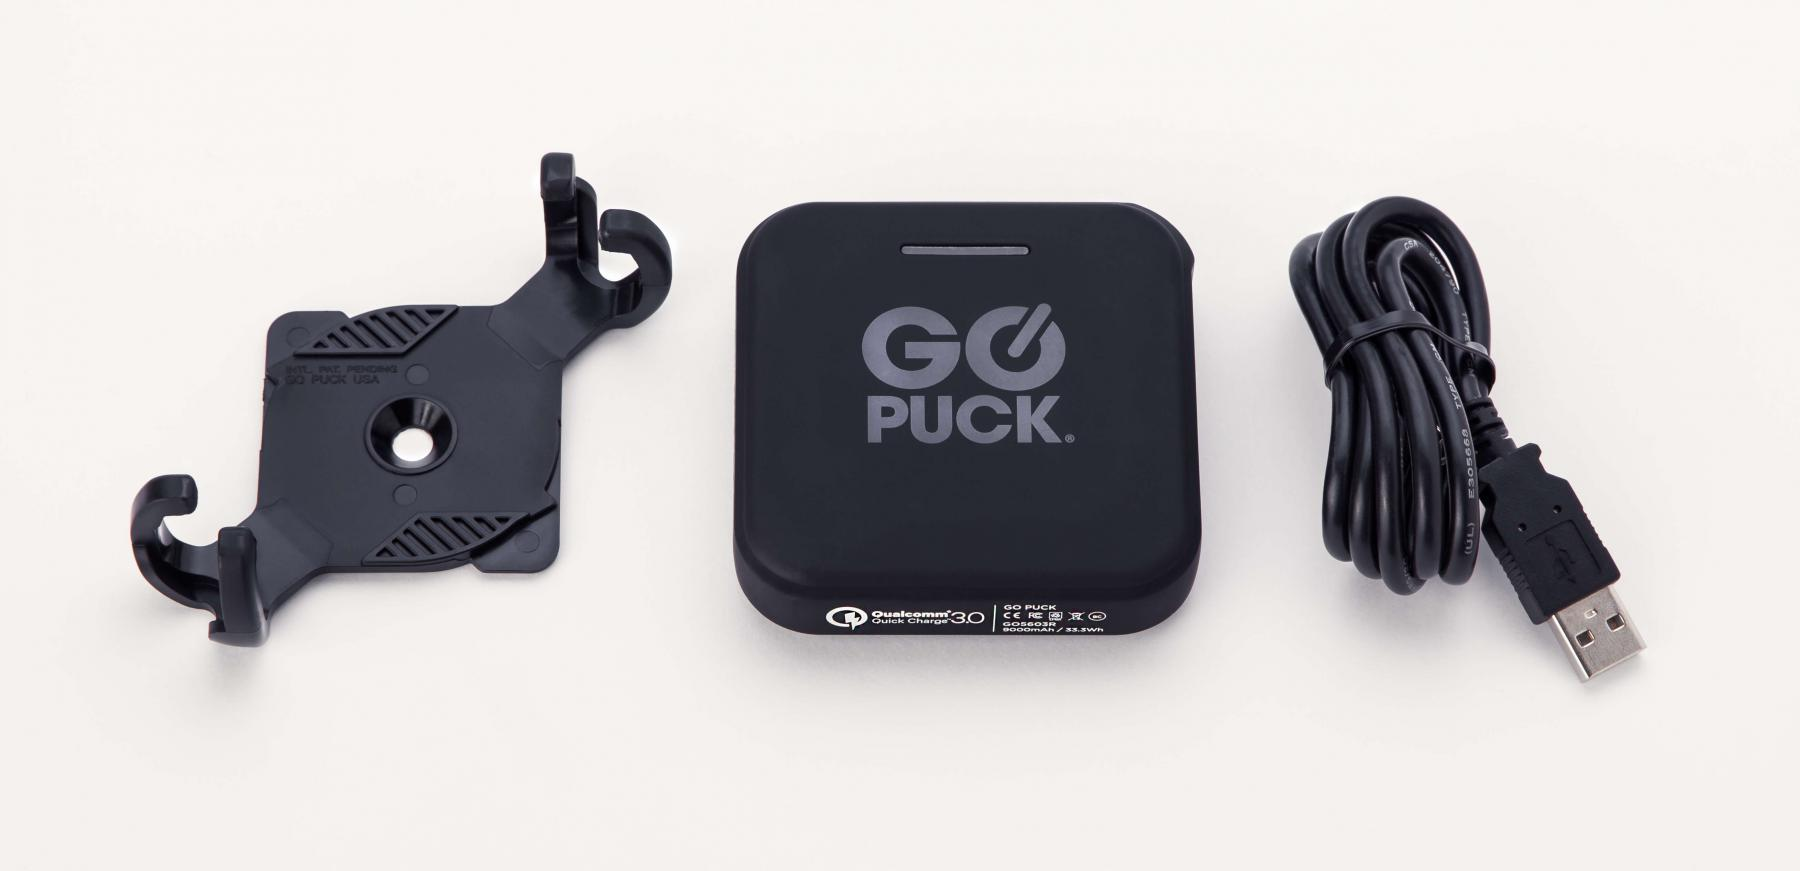 Go Puck portably battery charger and cable, mount